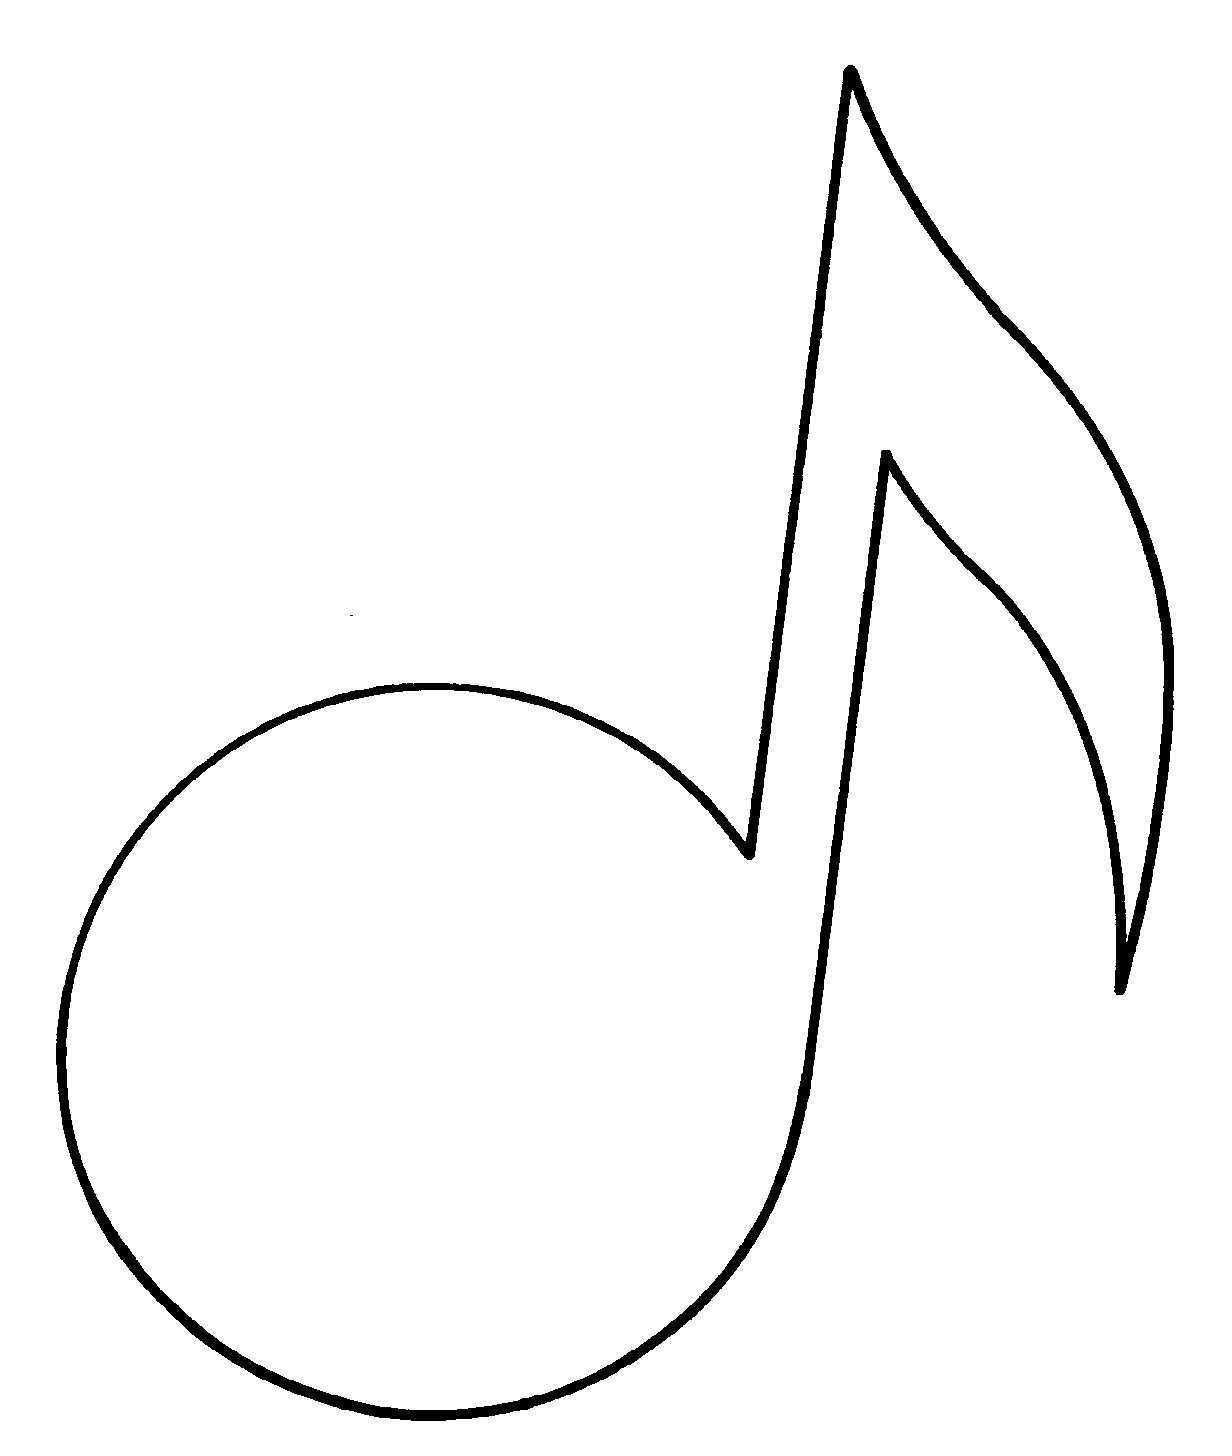 Free Music Note Outline, Download Free Clip Art, Free Clip Art On - Free Printable Music Notes Templates